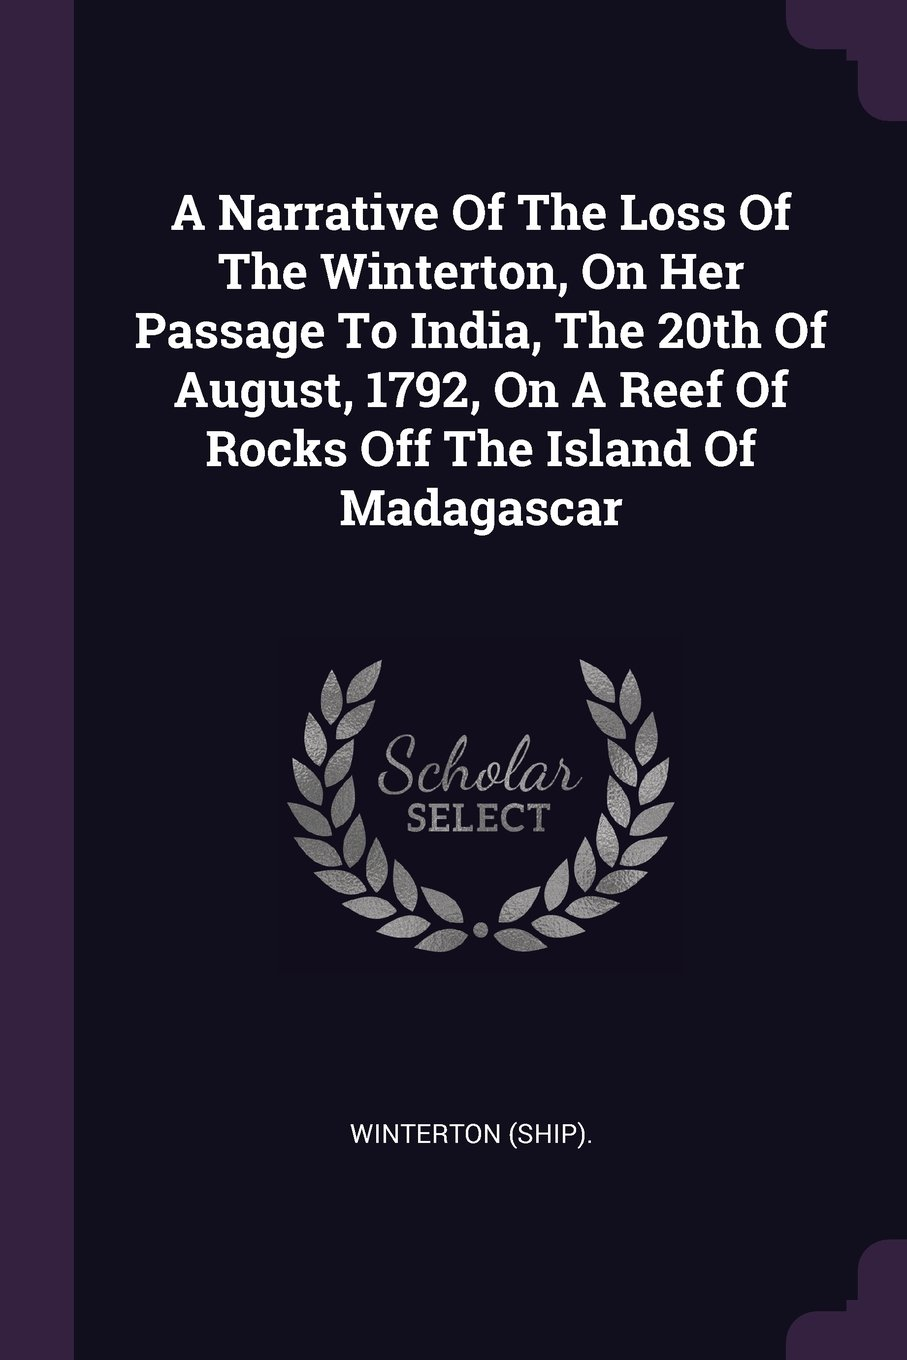 A Narrative of the Loss of the Winterton, on Her Passage to India, the 20th of August, 1792, on a Reef of Rocks Off the Island of Madagascar PDF